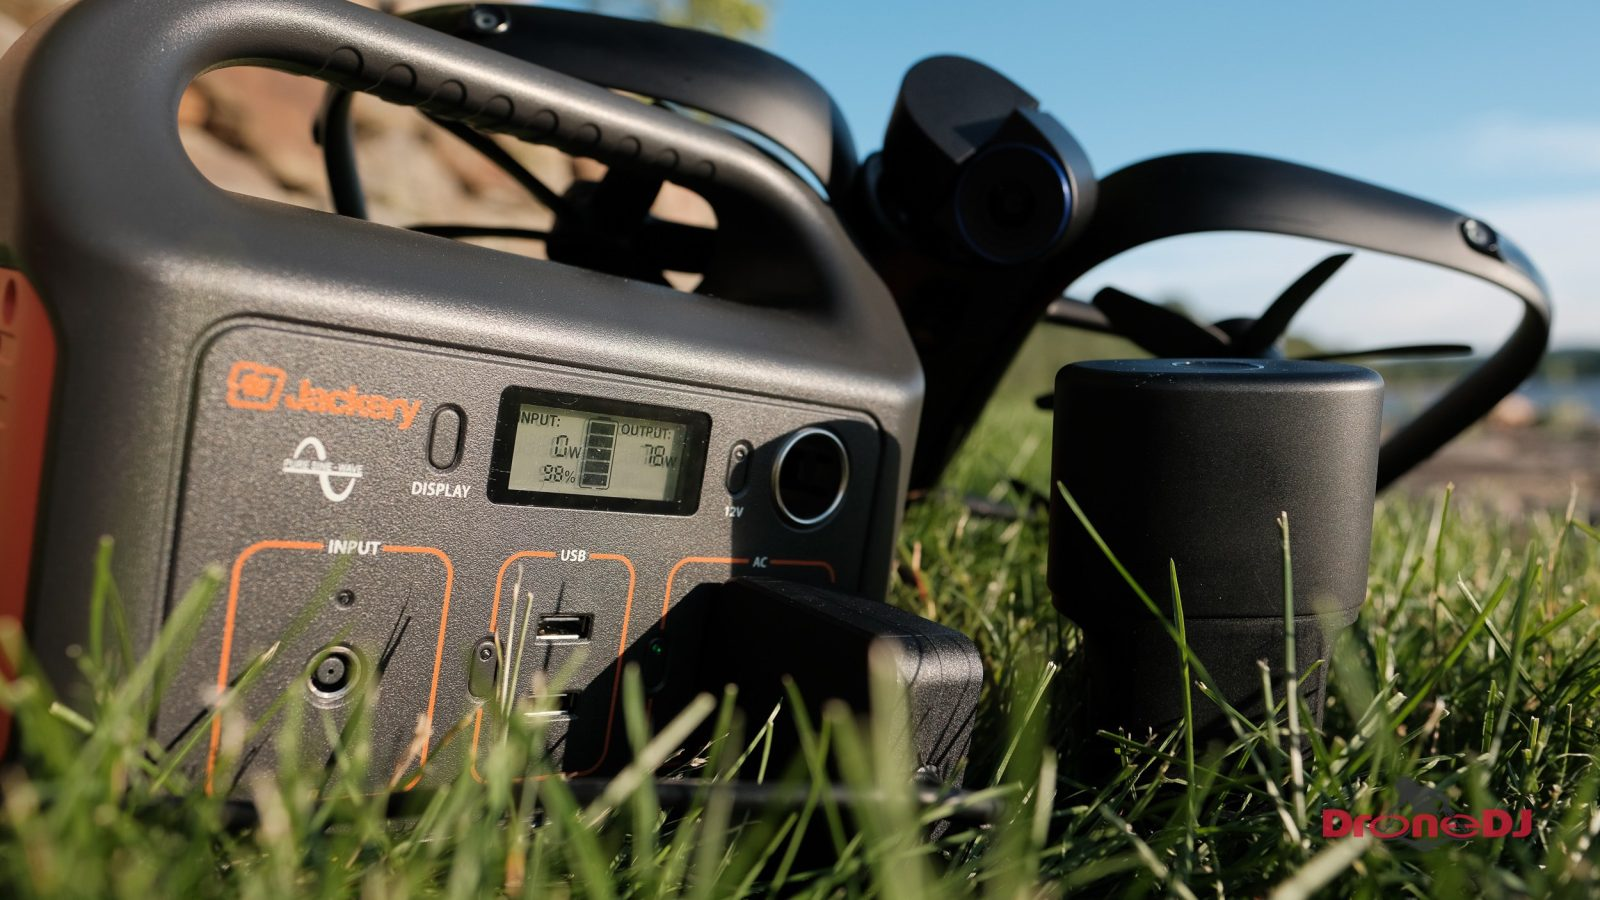 Review The Jackery 50w Explorer Solar Panel And 240 Mini Battery Charger Test Home Circuits